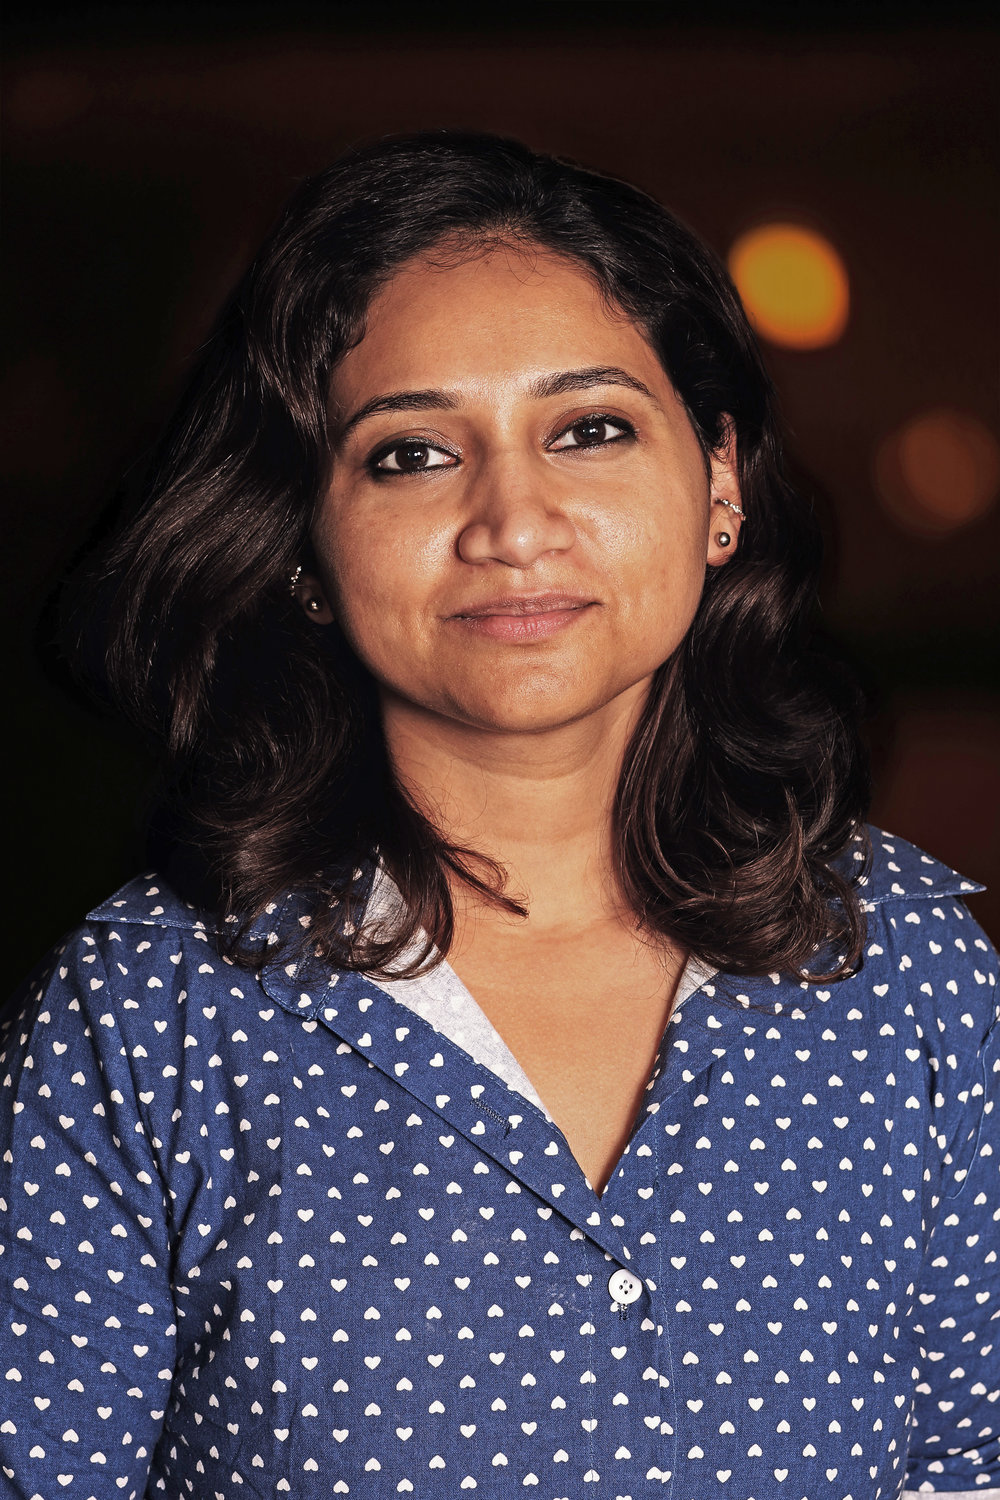 Rashmi Ganesh,  Senior Marketing Manager, India